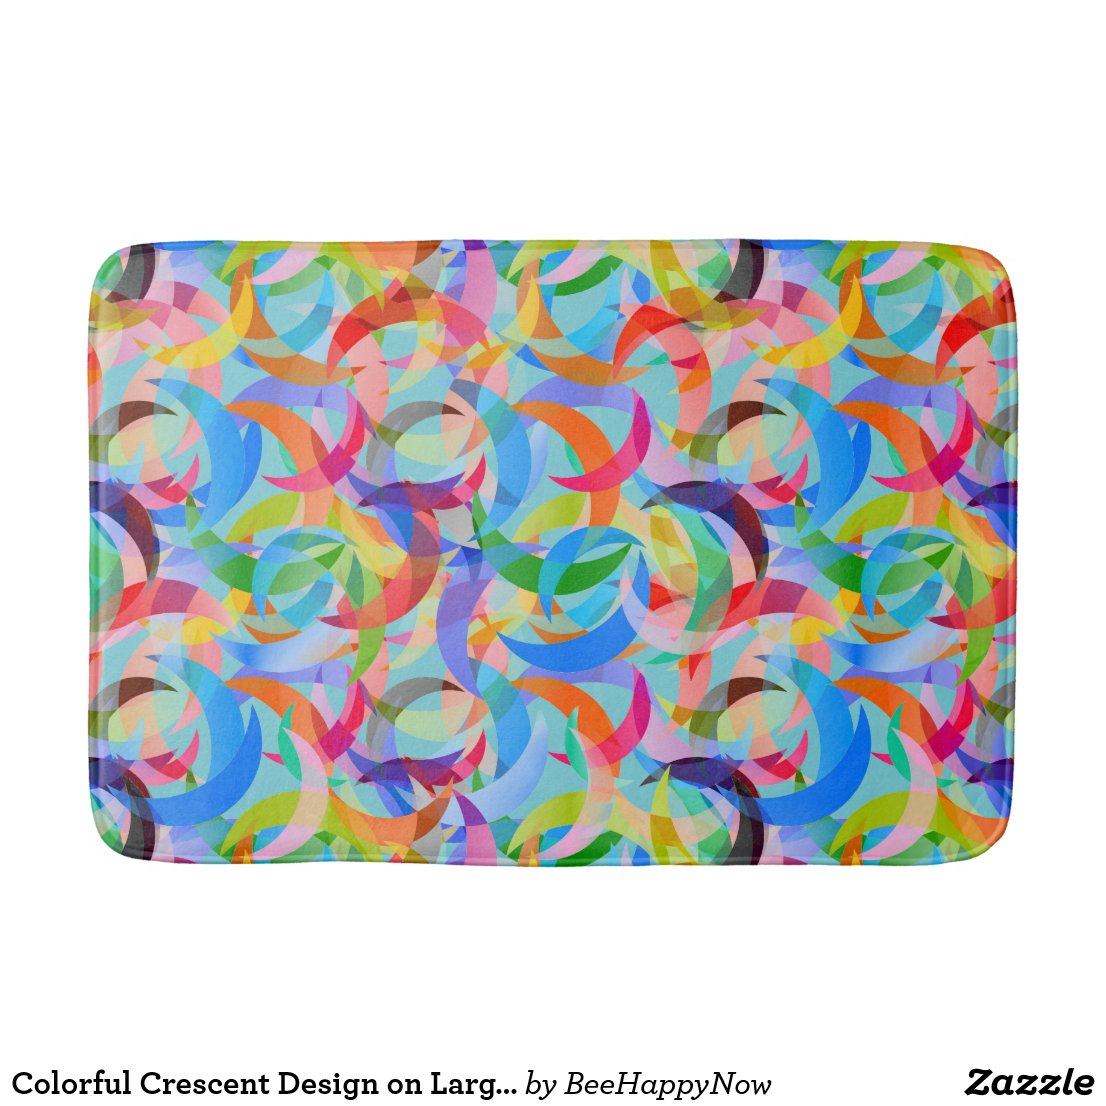 Colorful Crescent Design on Large Large Bath Mat